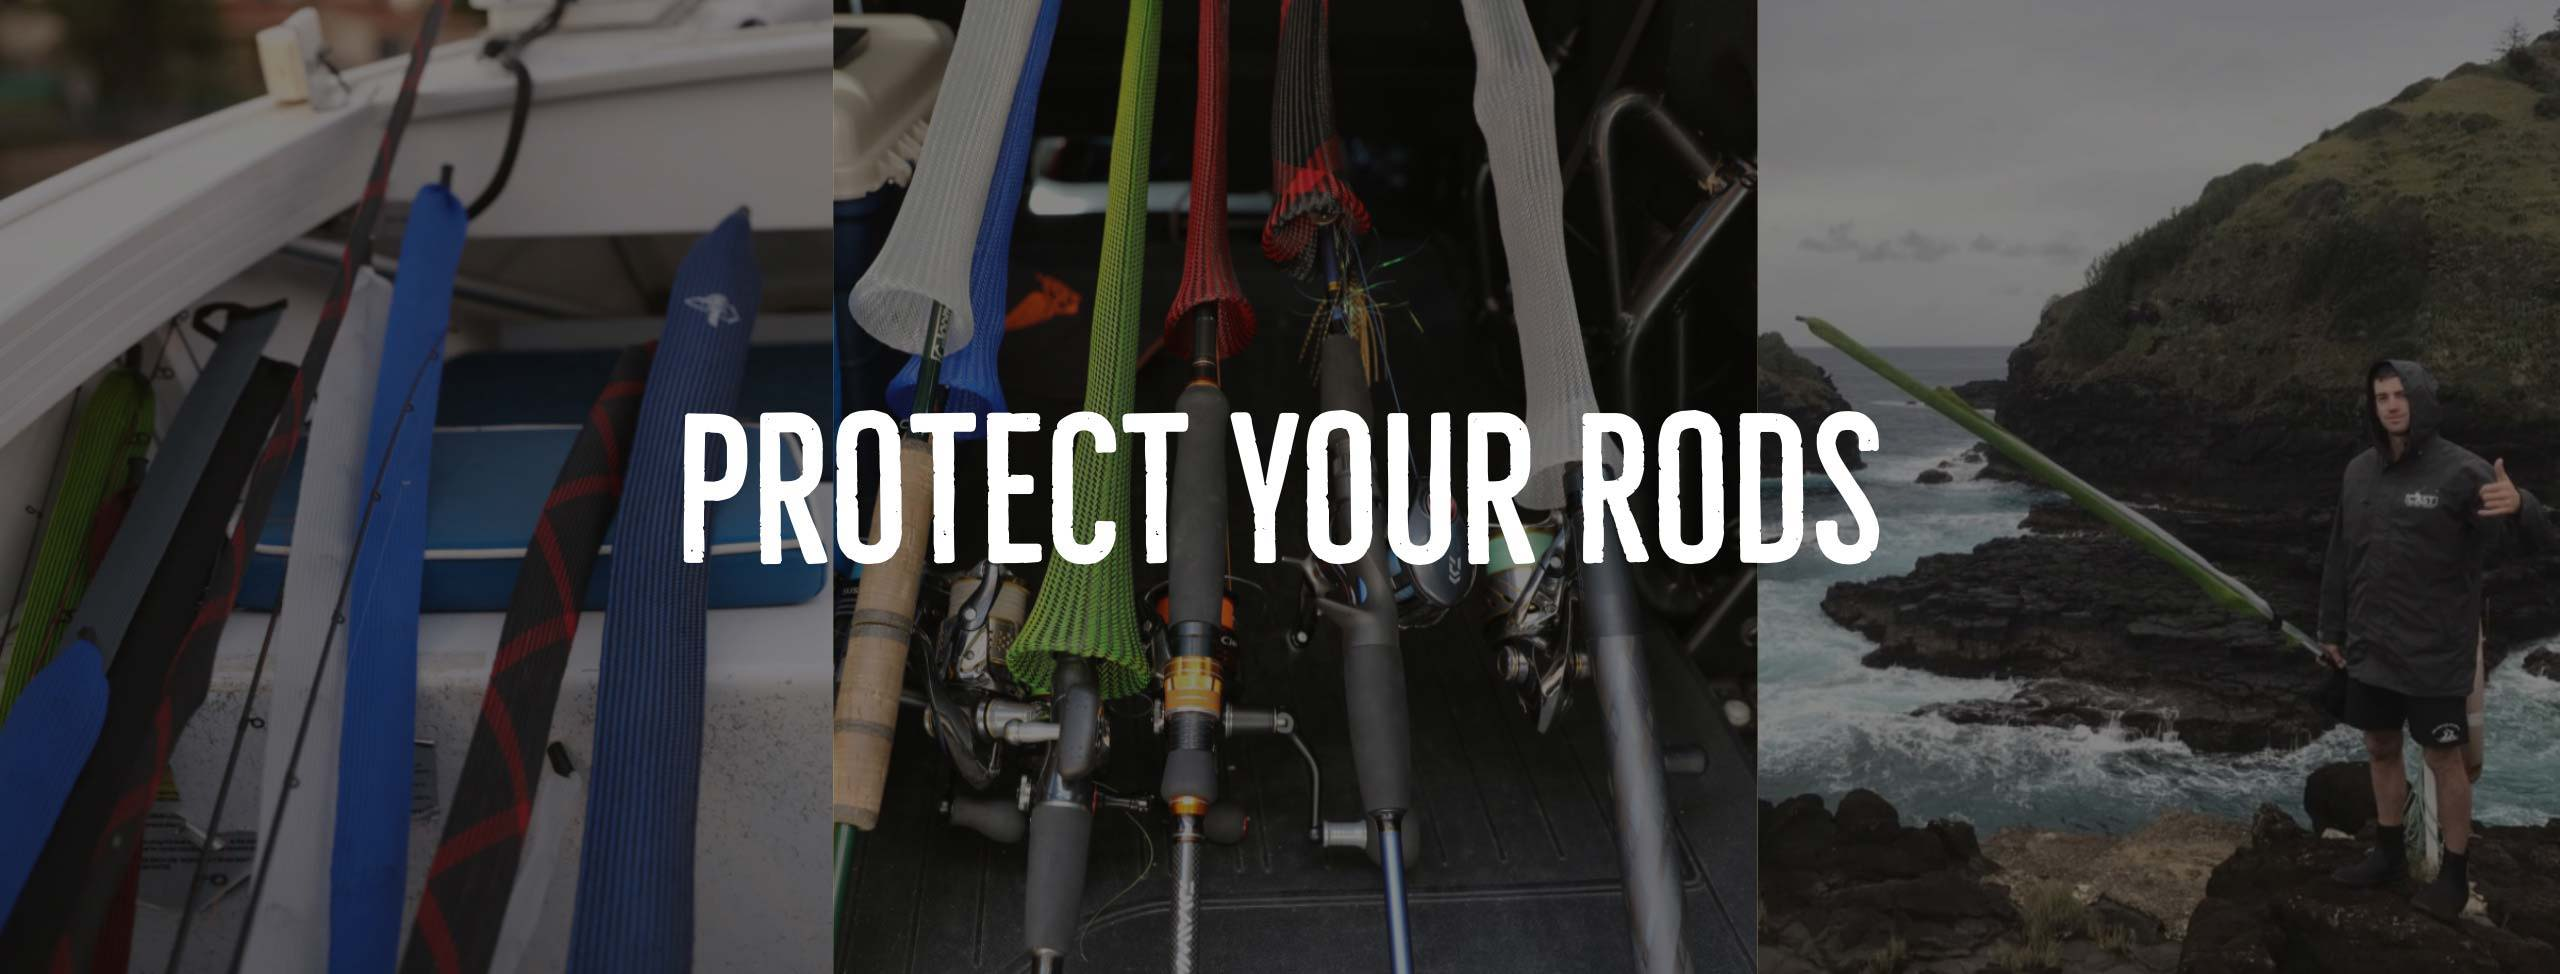 Protect your rods with rod armour